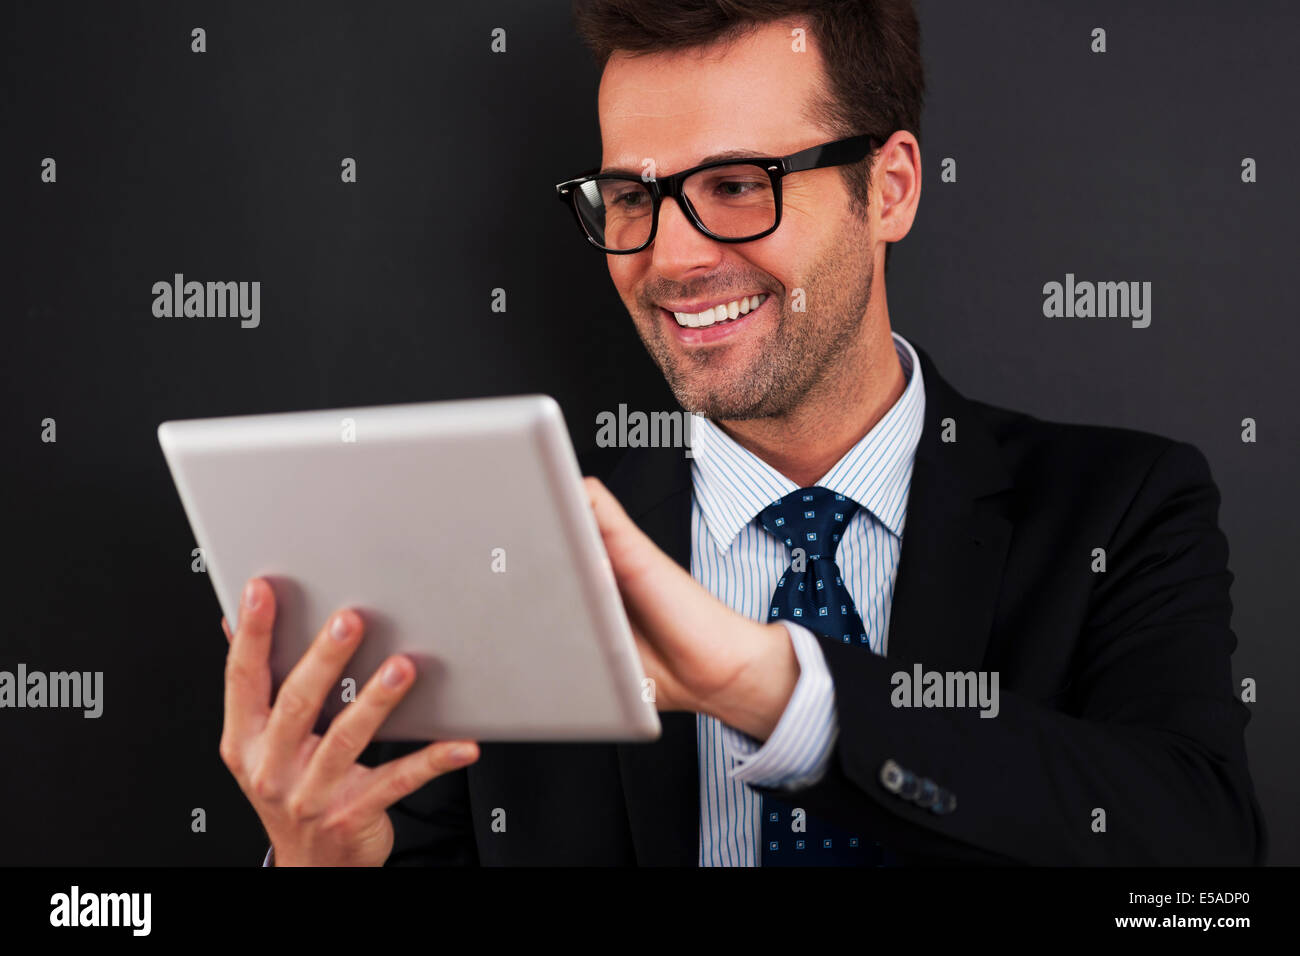 Businessman working on his touchpad, Debica, Poland - Stock Image